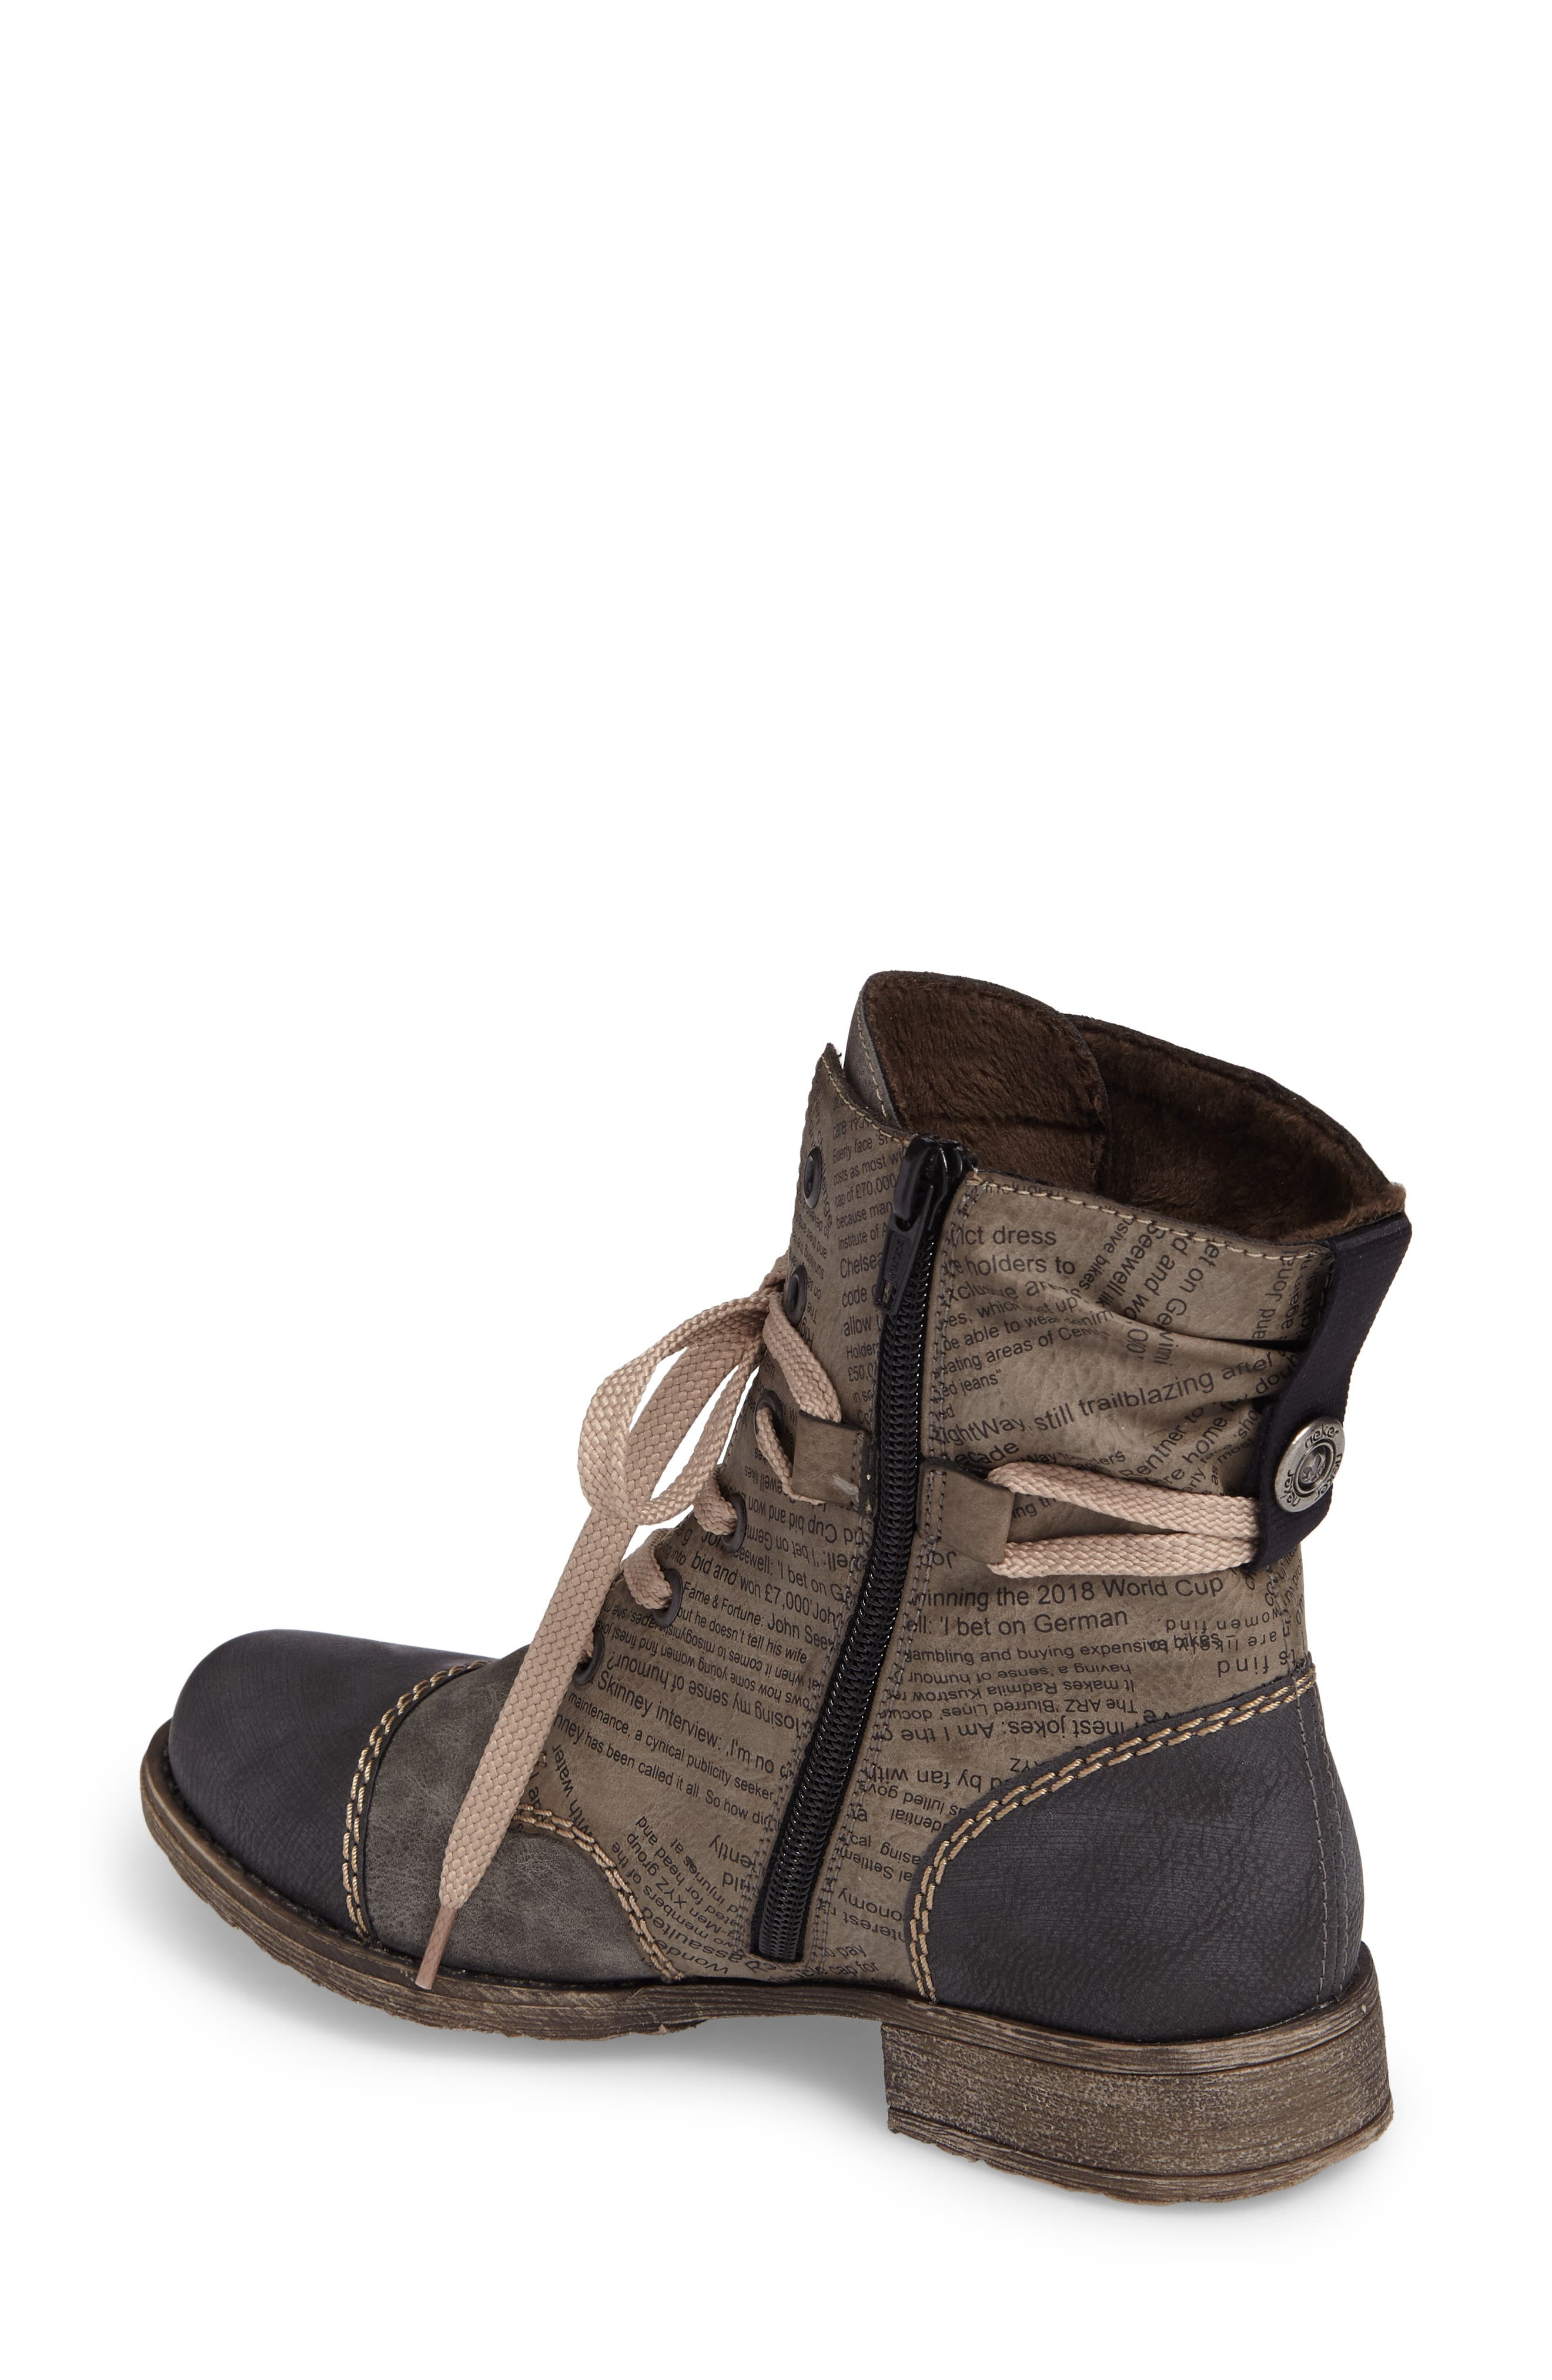 Payton 22 Lace-Up Boot,                             Alternate thumbnail 2, color,                             SMOKE FAUX LEATHER